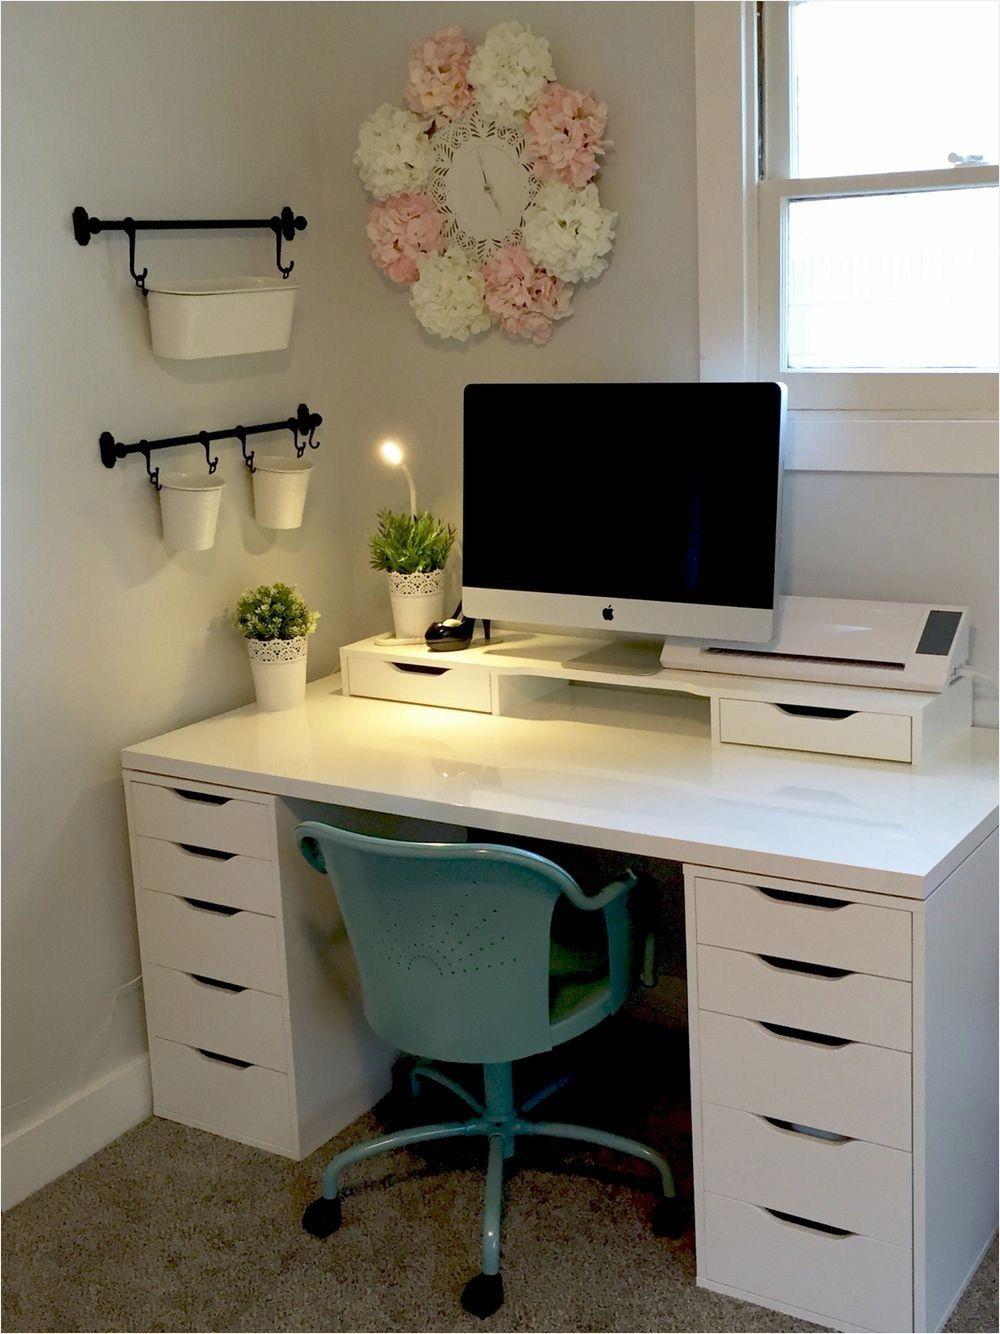 Room Designer Ikea: 25 Best Craft Room Design And Furniture Ideas By IKEA